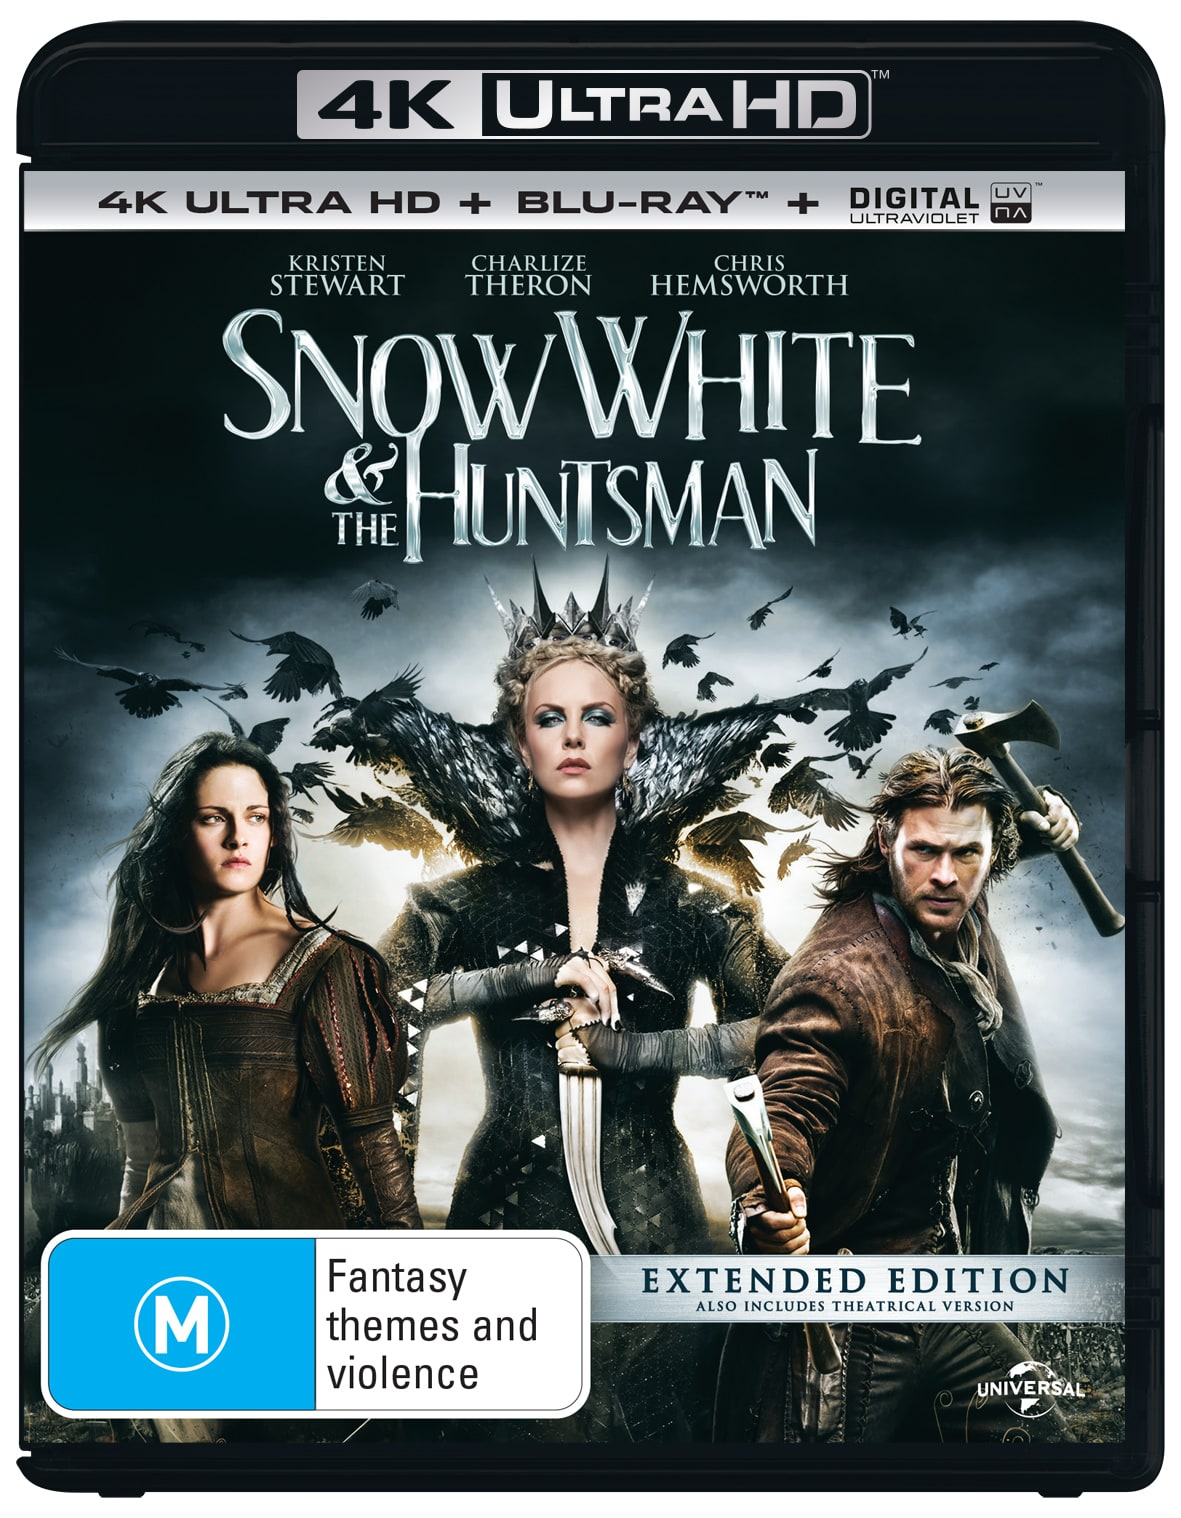 Snow White and the Huntsman (4K Ultra HD + Blu-ray) [UHD]